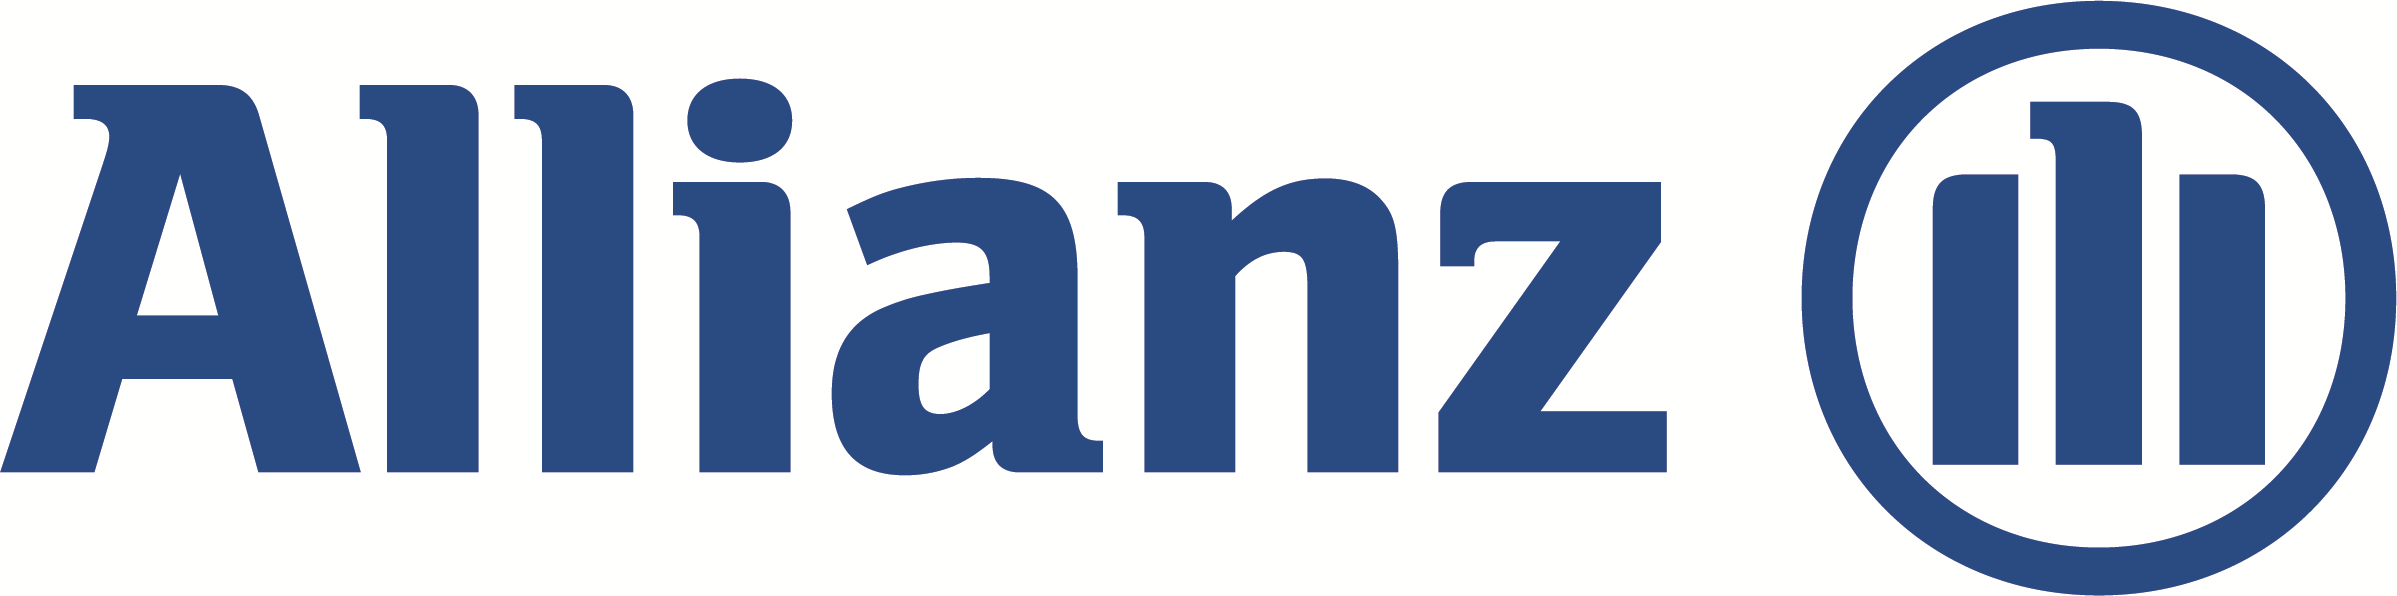 AllianzLogo_287_HiRes-1